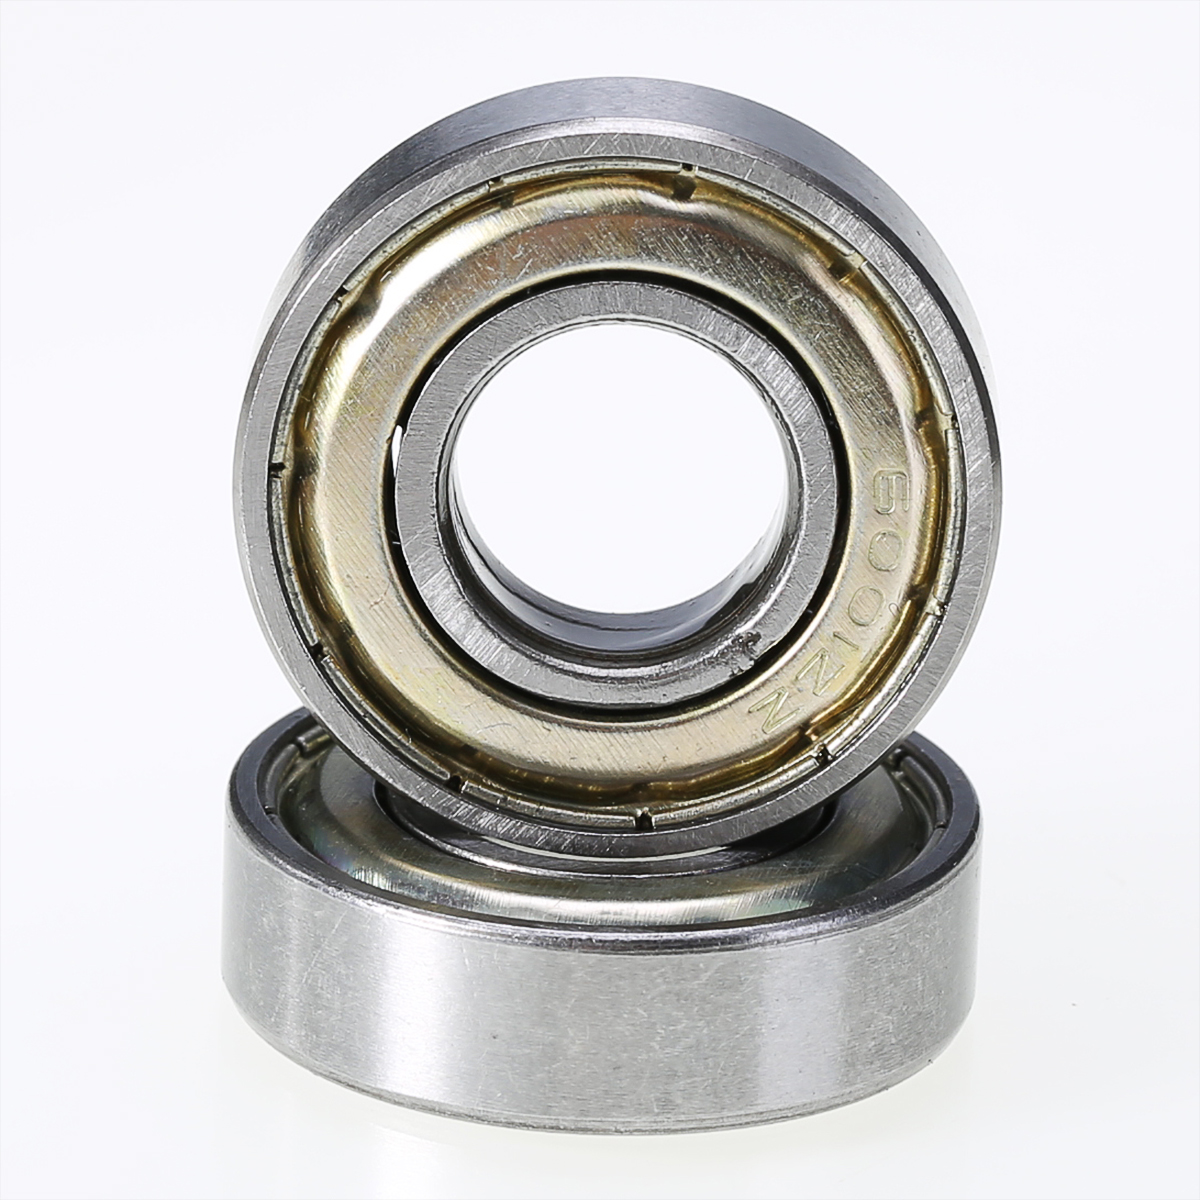 5Pcs/Set Deep Groove Ball Bearings 6001ZZ Shielded Radial Ball Bearing 12mm x 28mm x 8mm for Agricultural Conveying